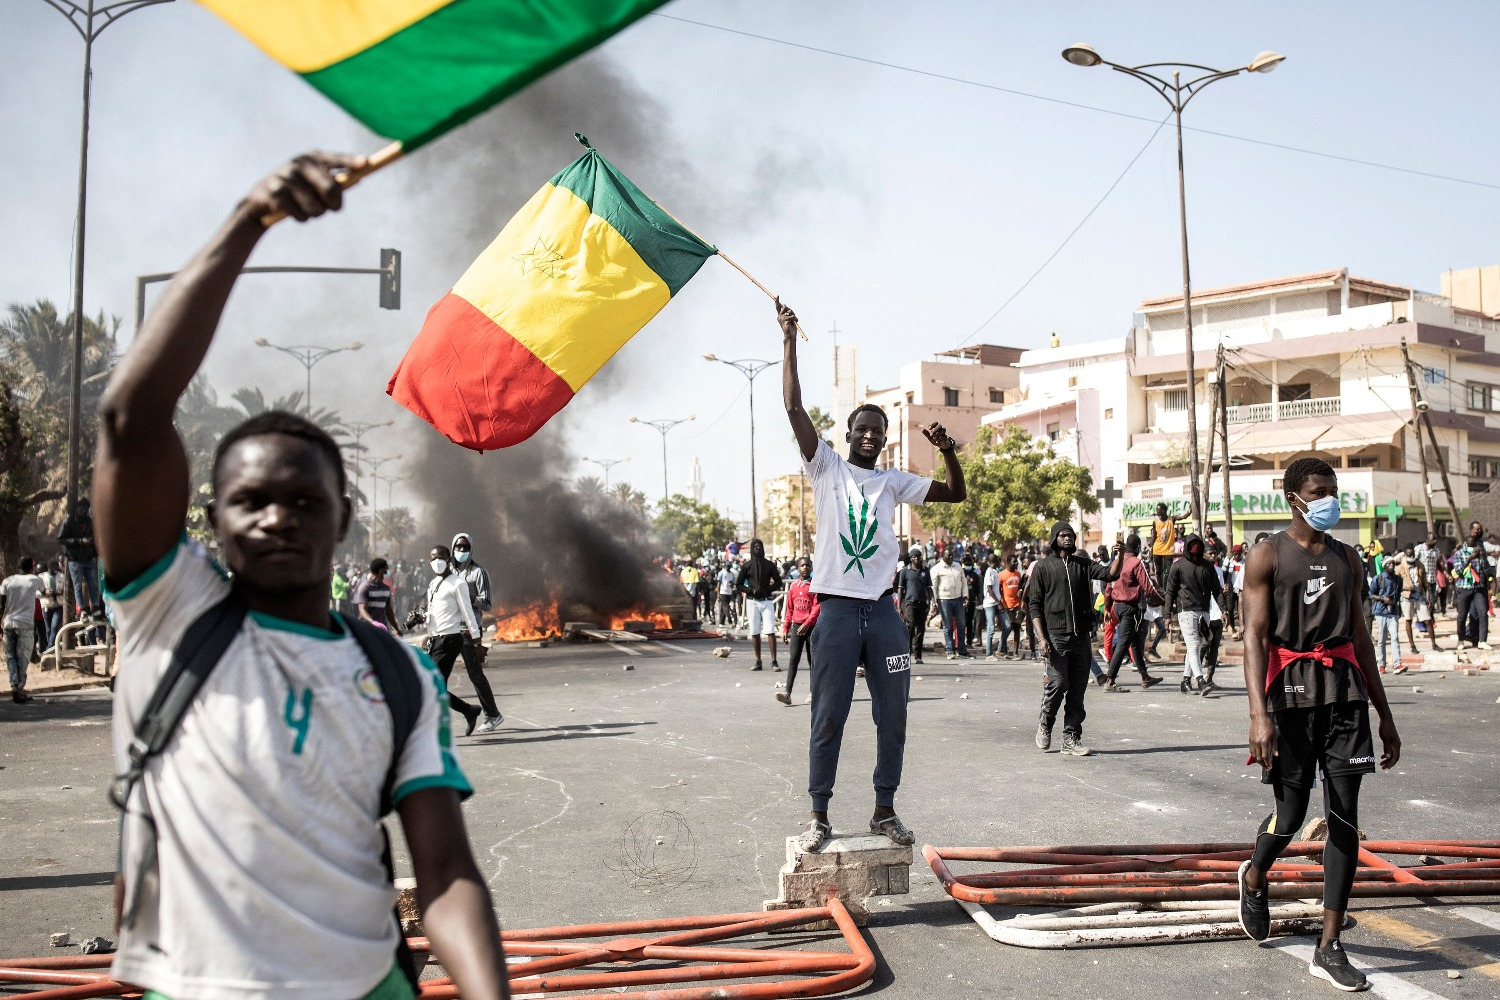 Protesters in Dakar, Senegal, on March 8.